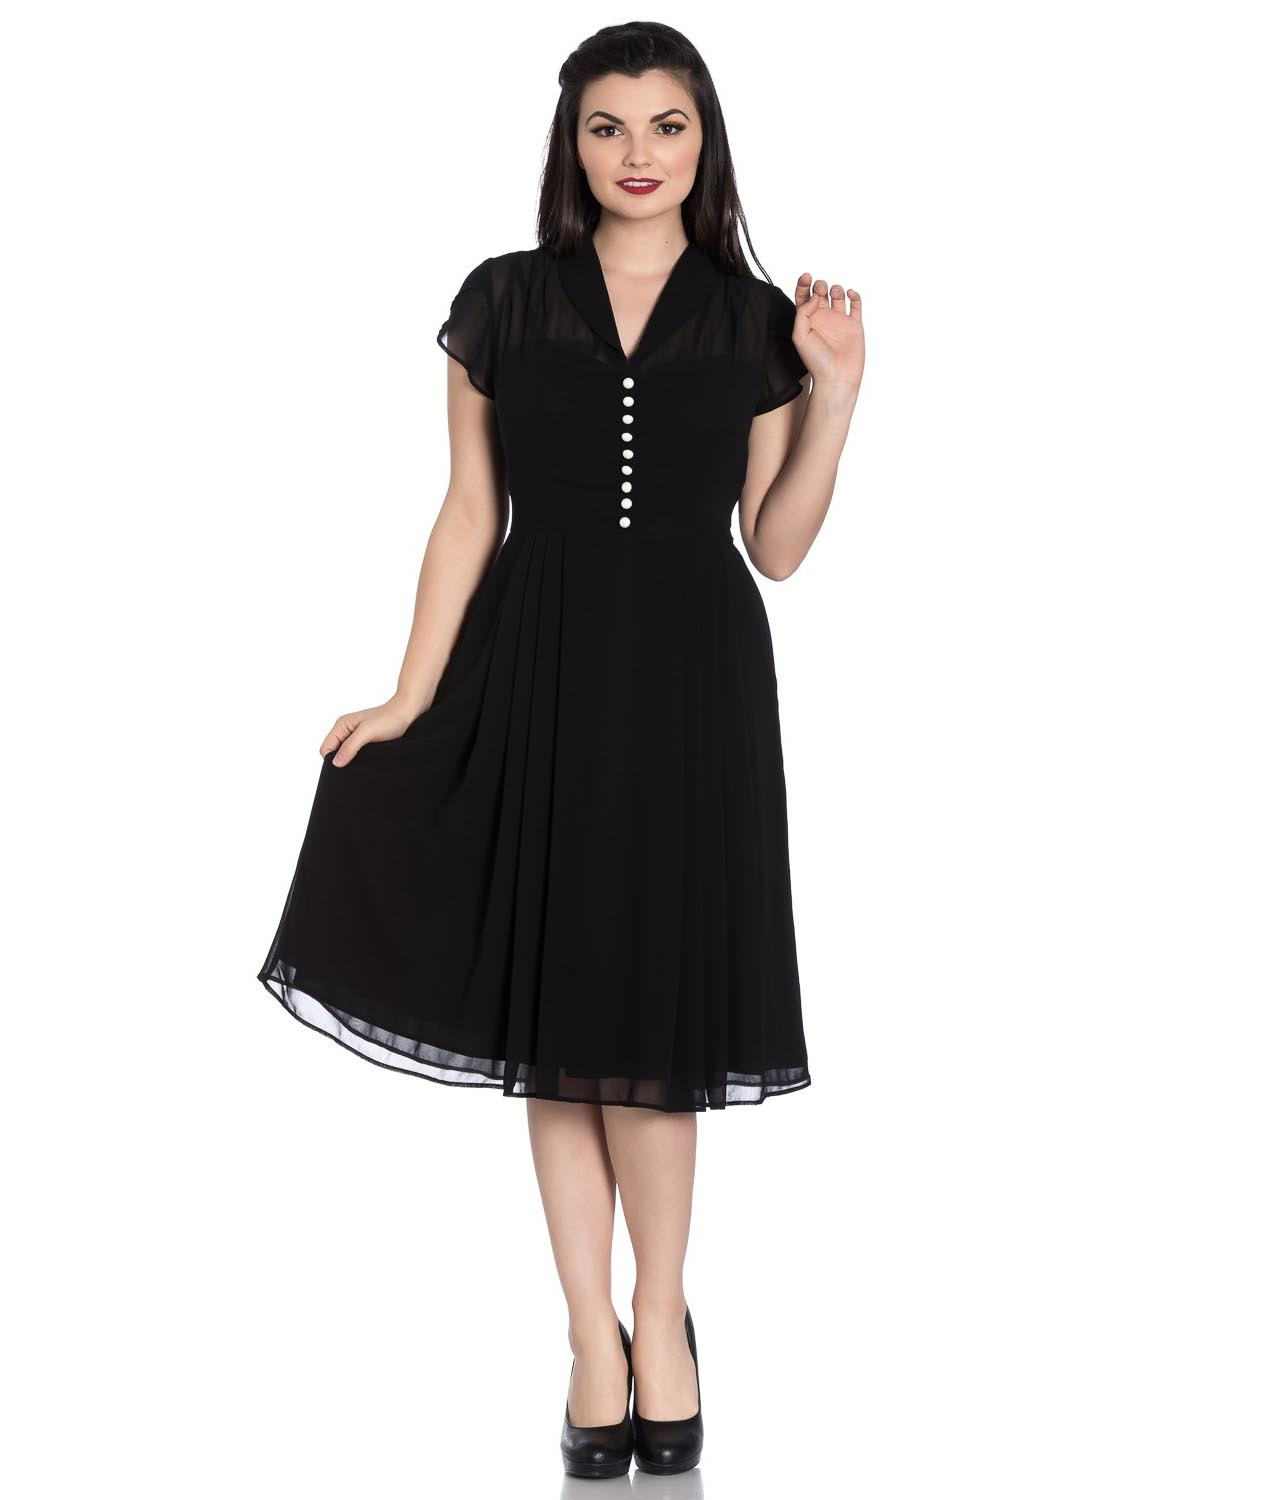 Hell-Bunny-40s-50s-Elegant-Pin-Up-Dress-PAIGE-Black-Chiffon-All-Sizes thumbnail 11